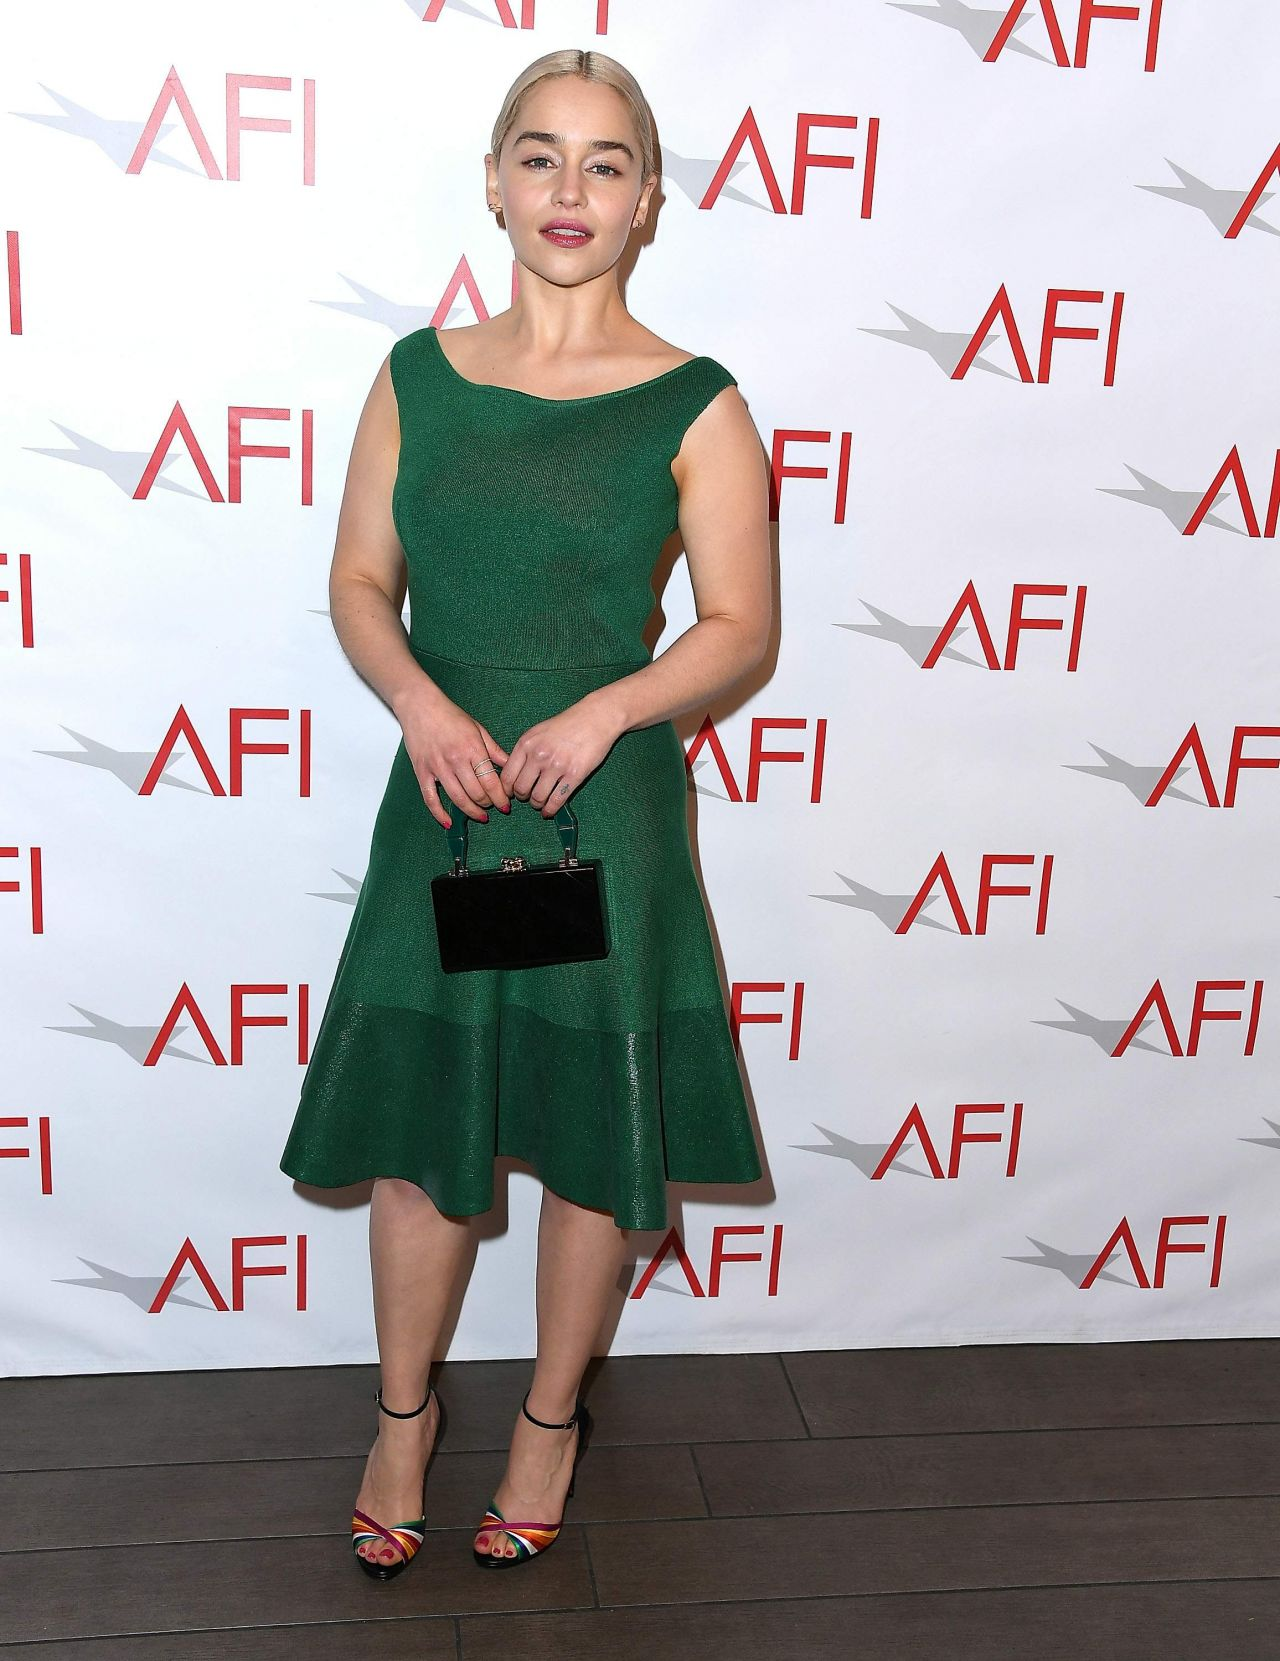 carpet for kids with Emilia Clarke Afi Awards 2018 In Los Angeles 1195529 on Paulo Dybala Hairstyle as well Heidi Klum And Her Daughter Leni Look Like Twins At 2017 Amas as well Bin Weevils Buys Hasbros My Little Pony likewise Eva Mendes Explains Didn T Attend Oscars Ryan further Macaulay Culkin Addresses Those Persistent Heroin Rumors W429760.